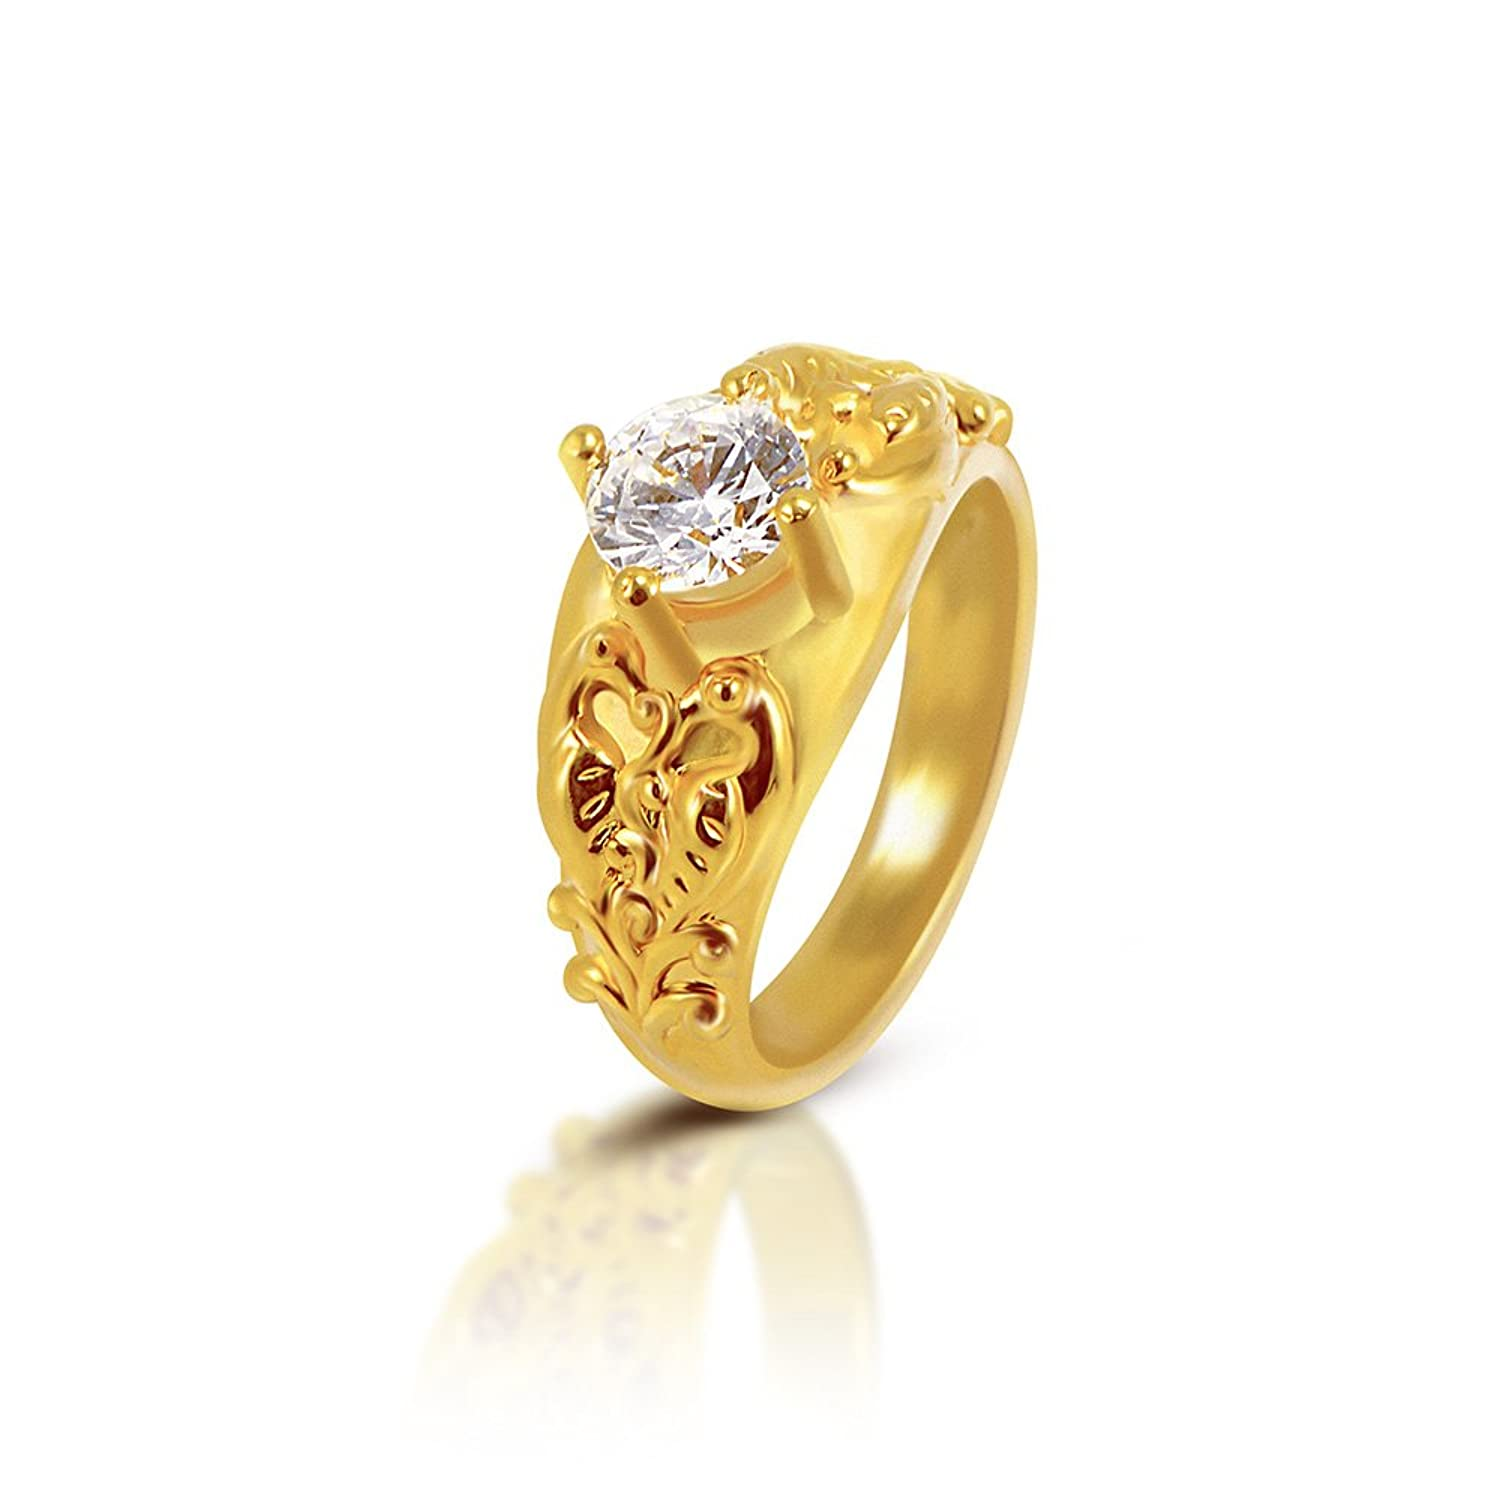 abhi ring with and gold diamond women jewelry rings for online